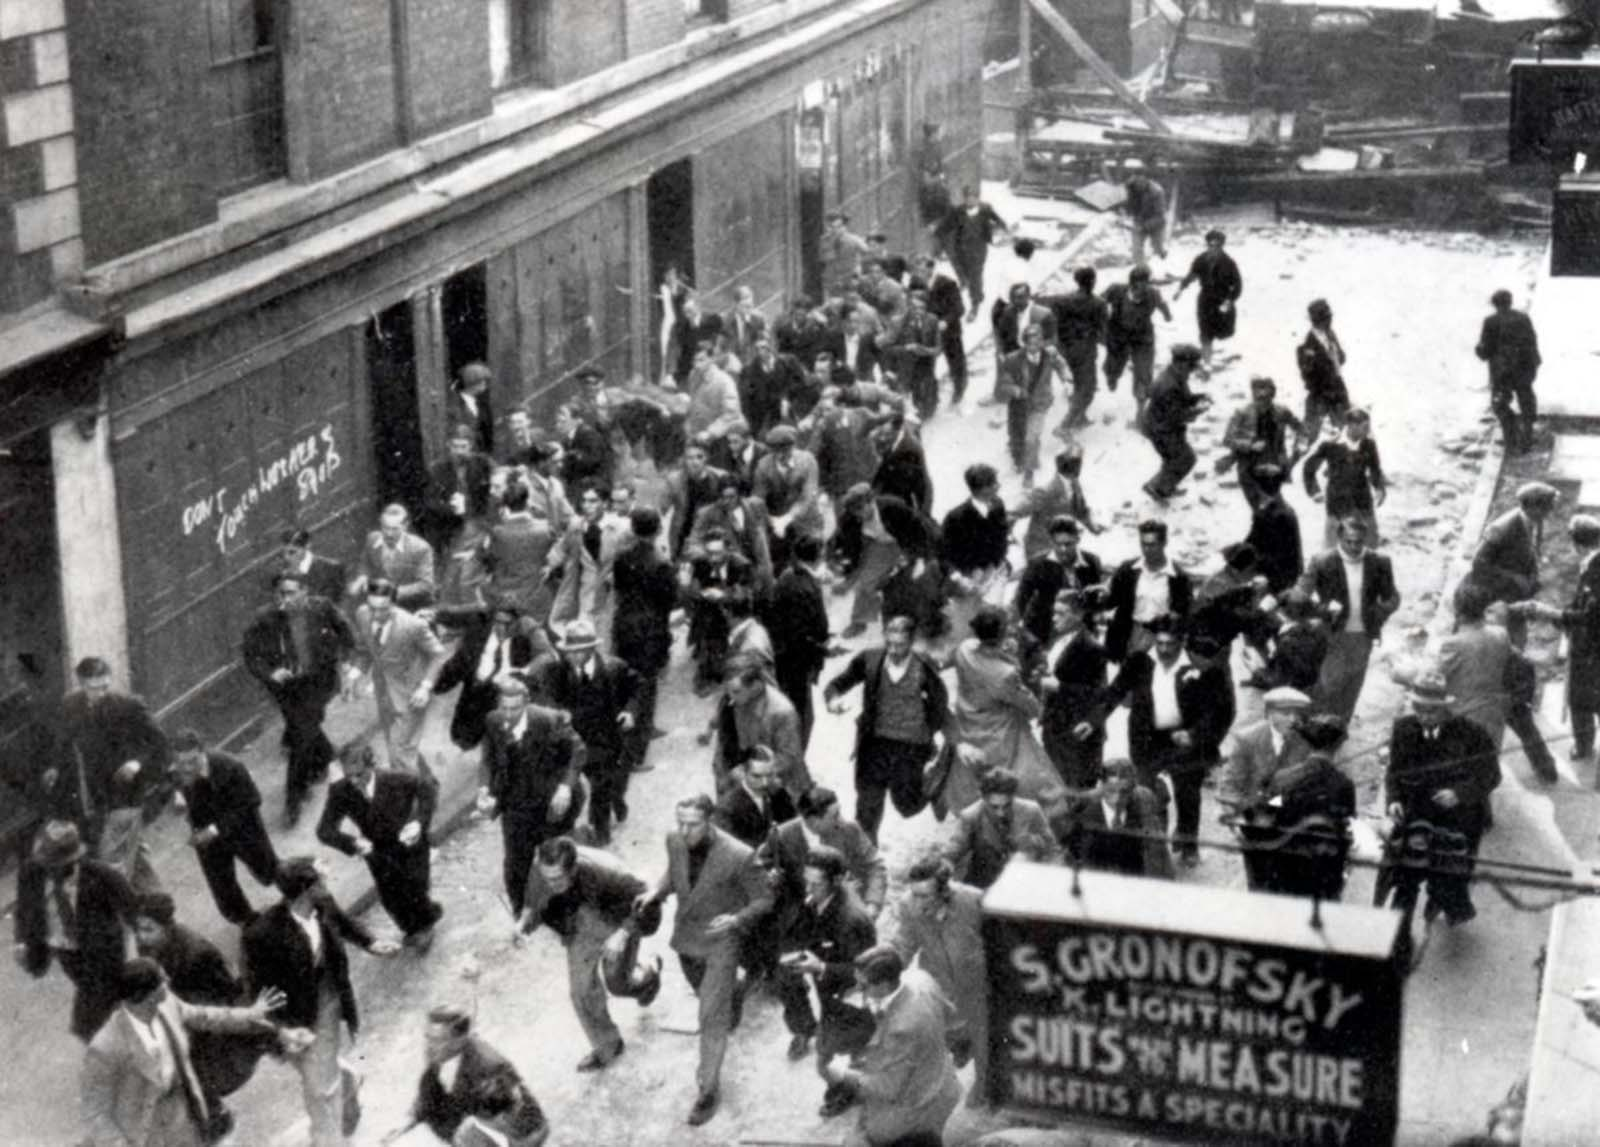 battle of cable street pictures